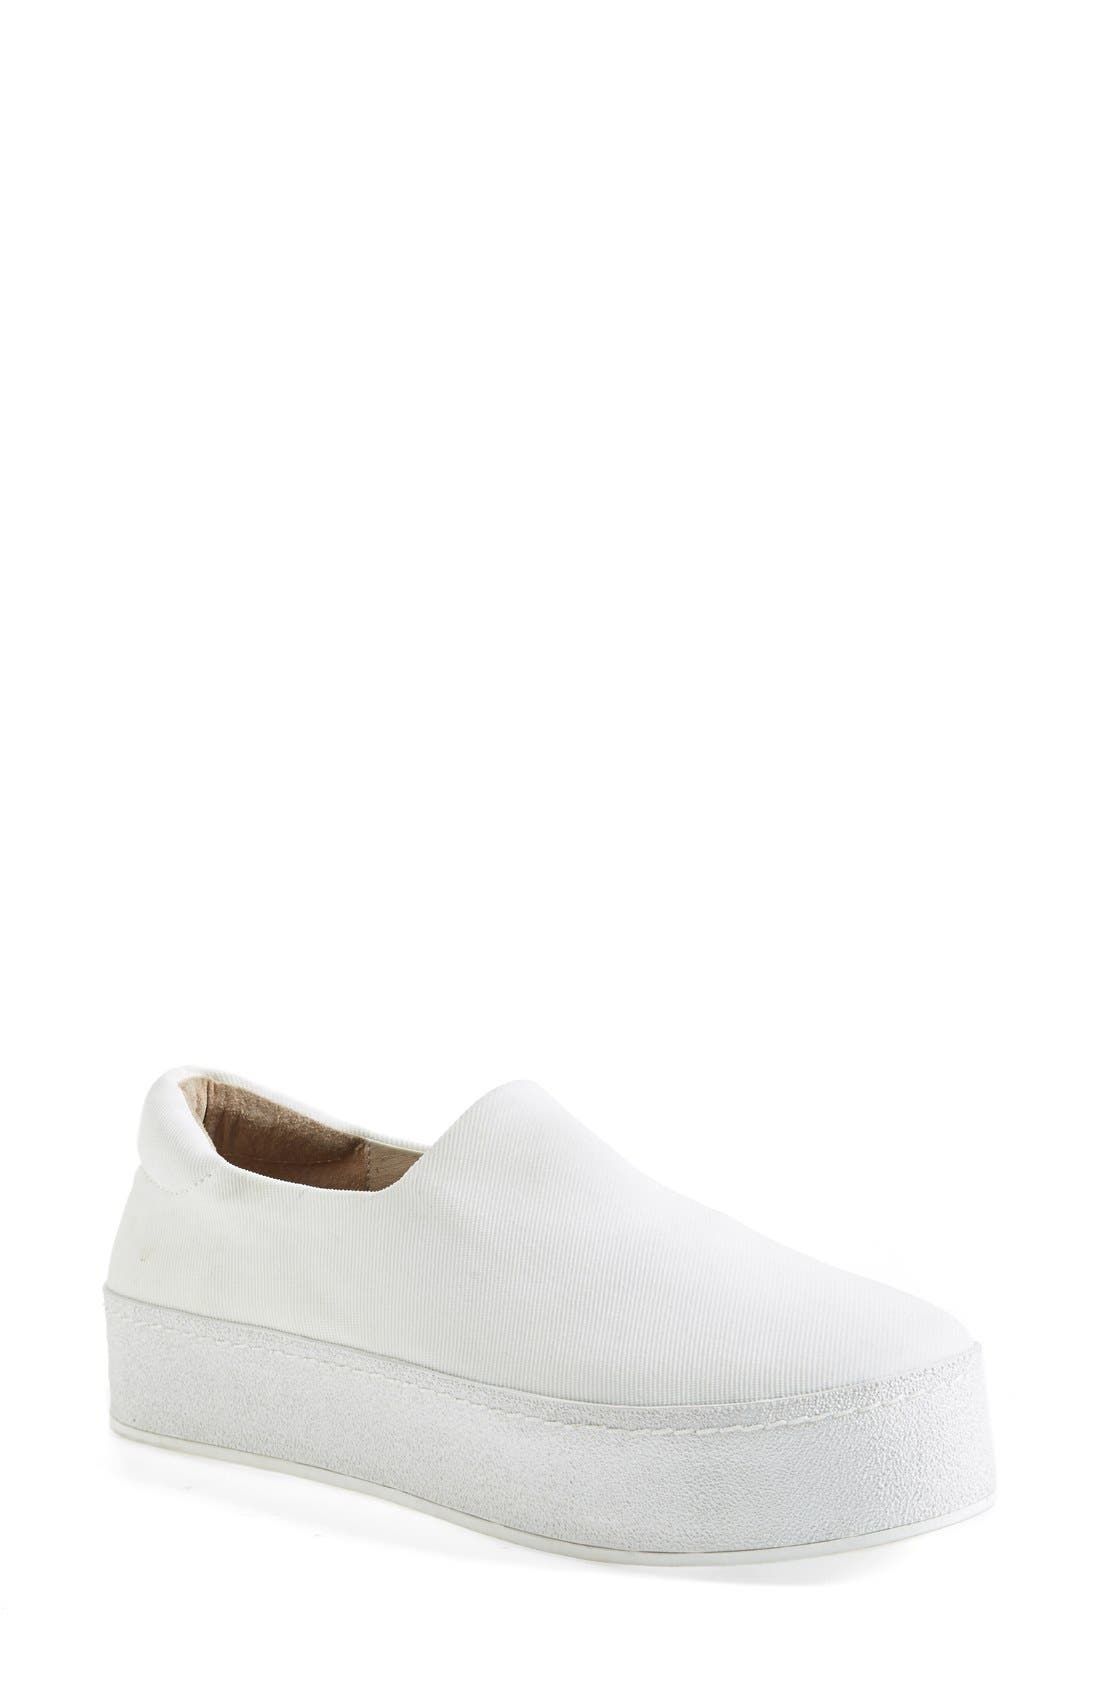 Opening Ceremony 'Grunge' Slip-On Platform Sneaker (Women)